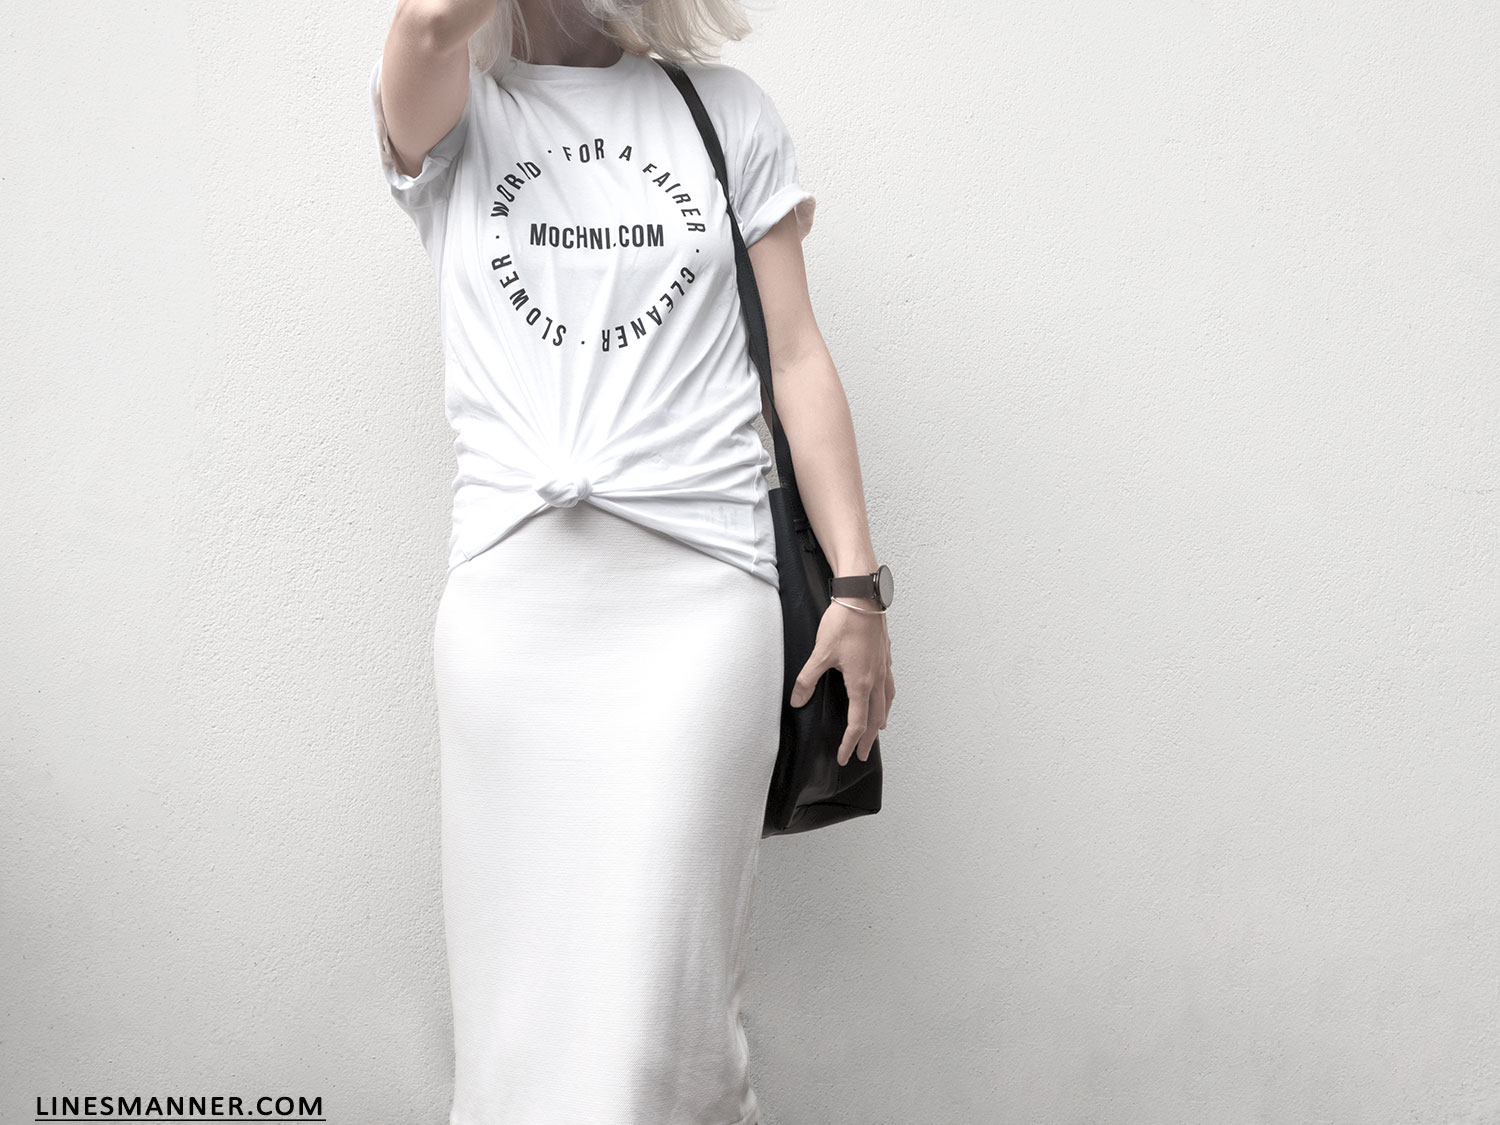 Lines-Manner-Mochni-Slow_Fashion_Plateform-Sustainable-Eco_Fashion-Awareness-Tee-Fairer-World-Conscious-Essentials-Minimal-Monochrome-Quality-Organic-1